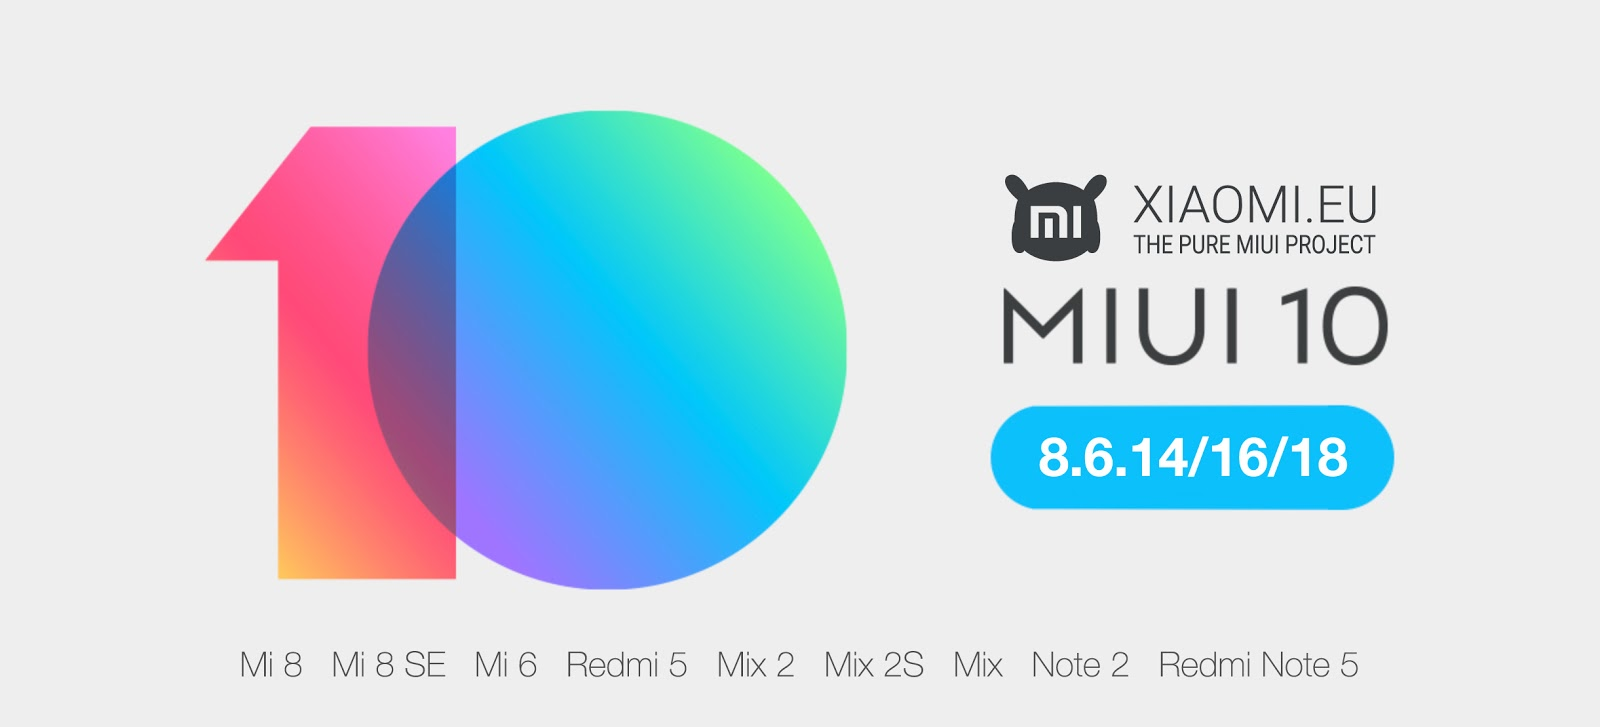 Download and Install Xiaomi EU's MIUI 10 on Xiaomi Mi Redmi